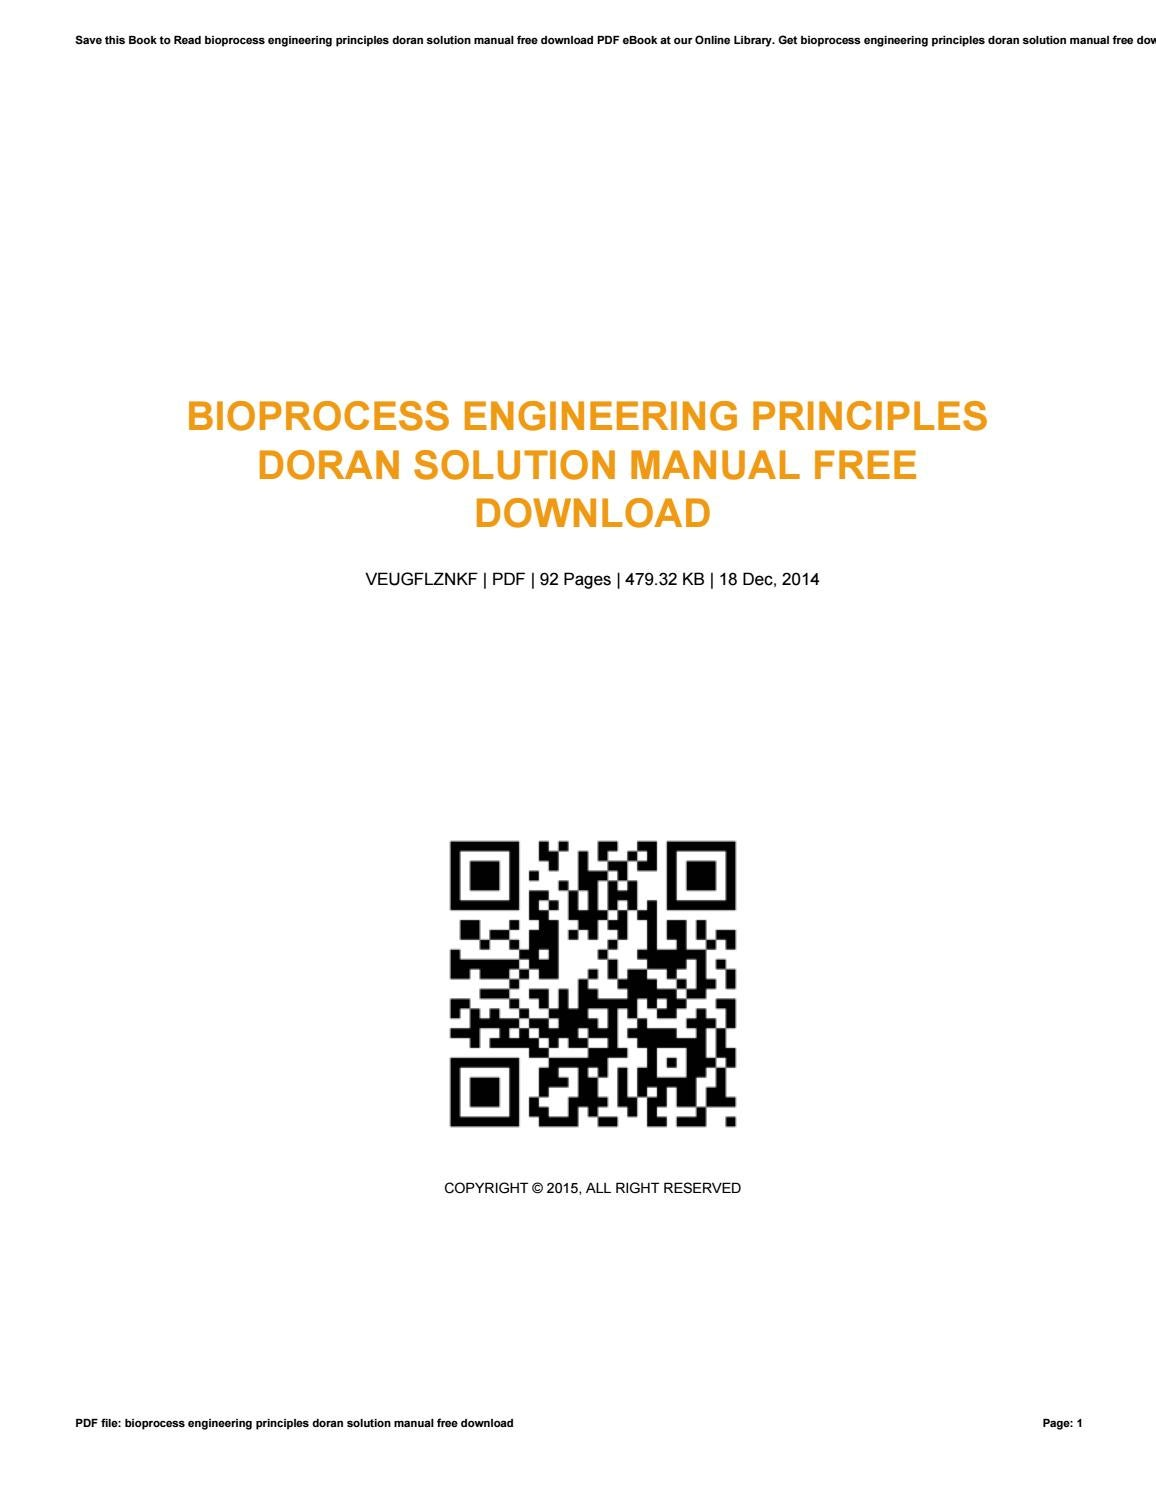 Bioprocess Engineering Principles Doran Pdf